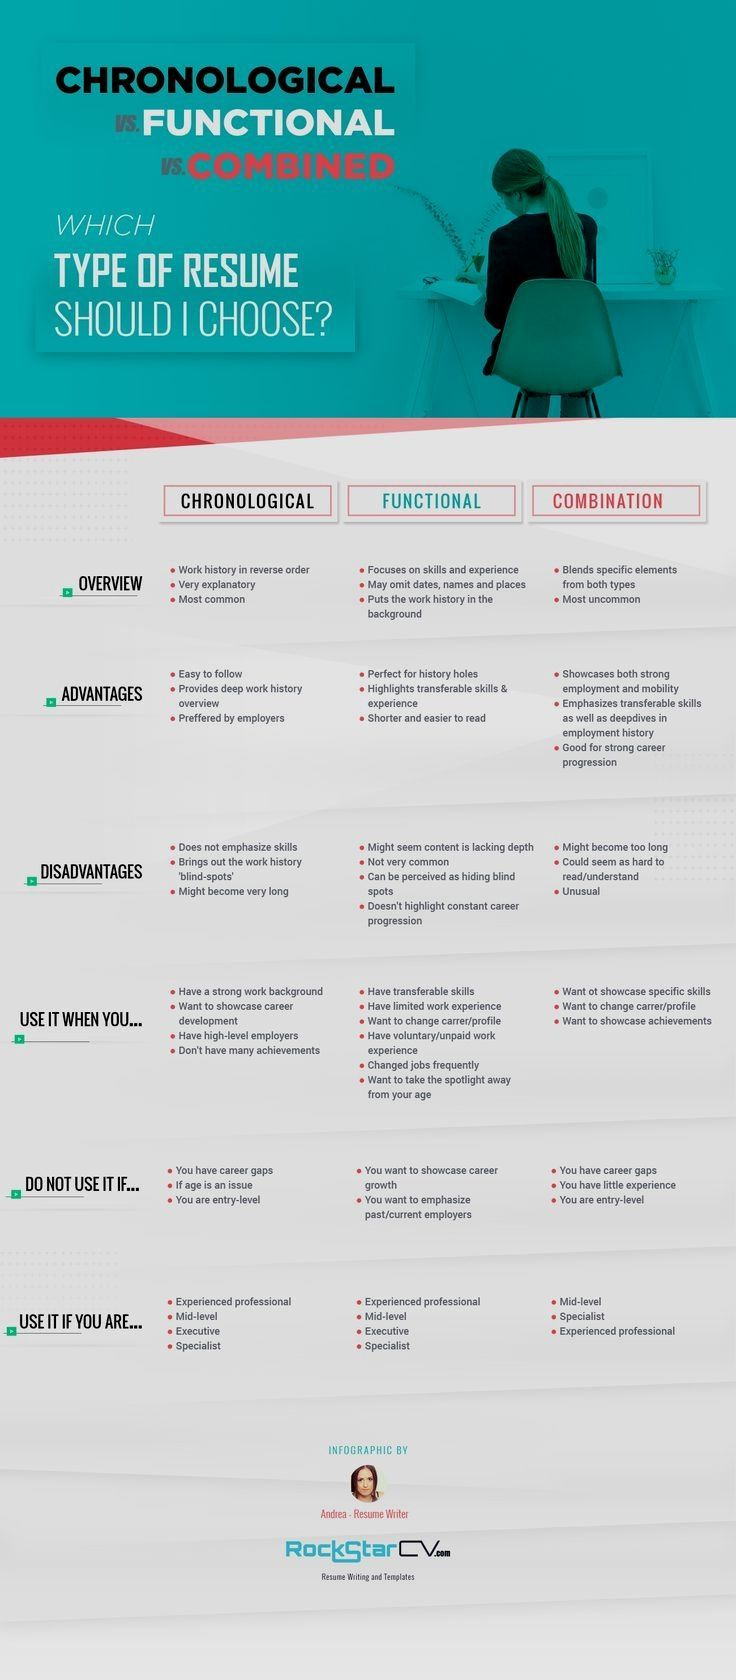 Infographic chronological vs functional vs combination